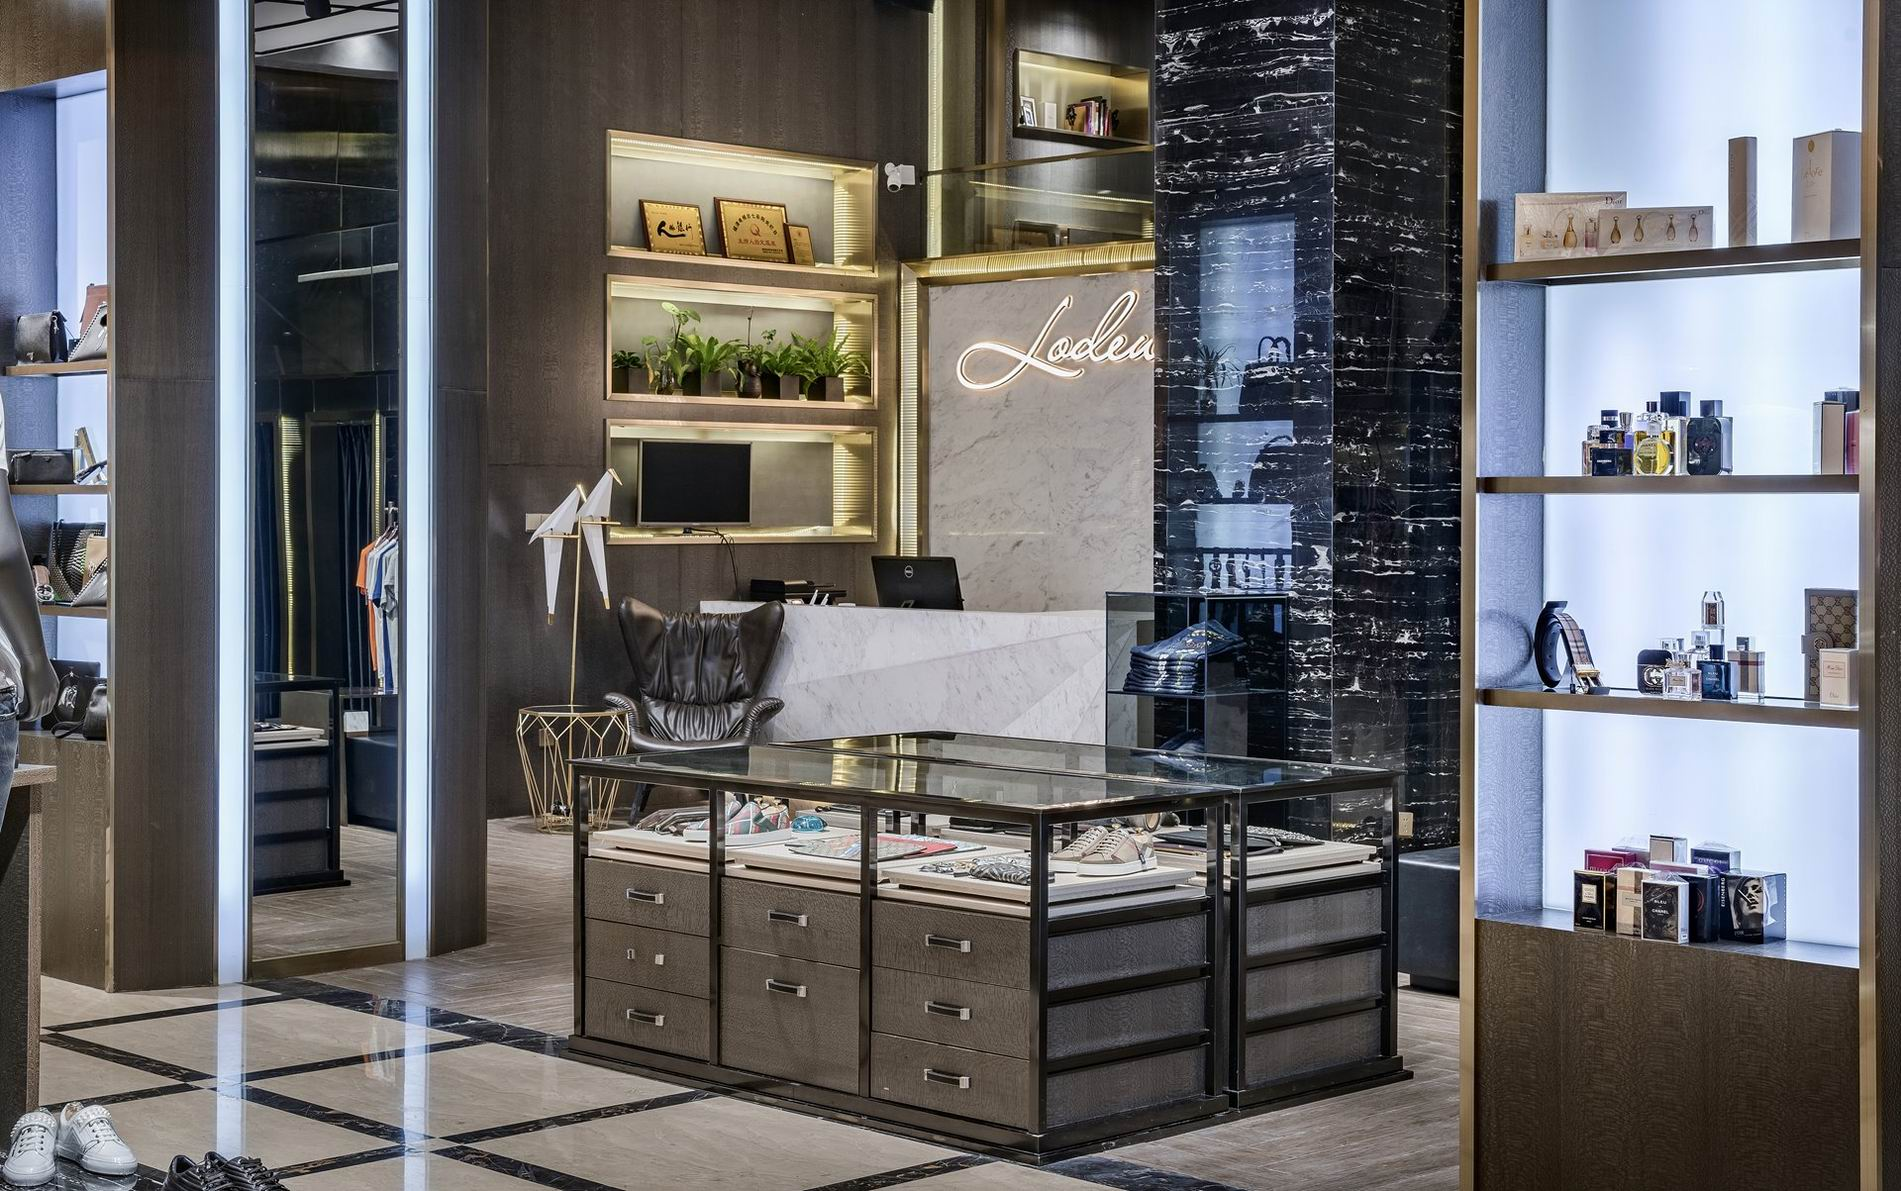 OUYEE free delivery tailoring shop interior design at discount underwear display-4